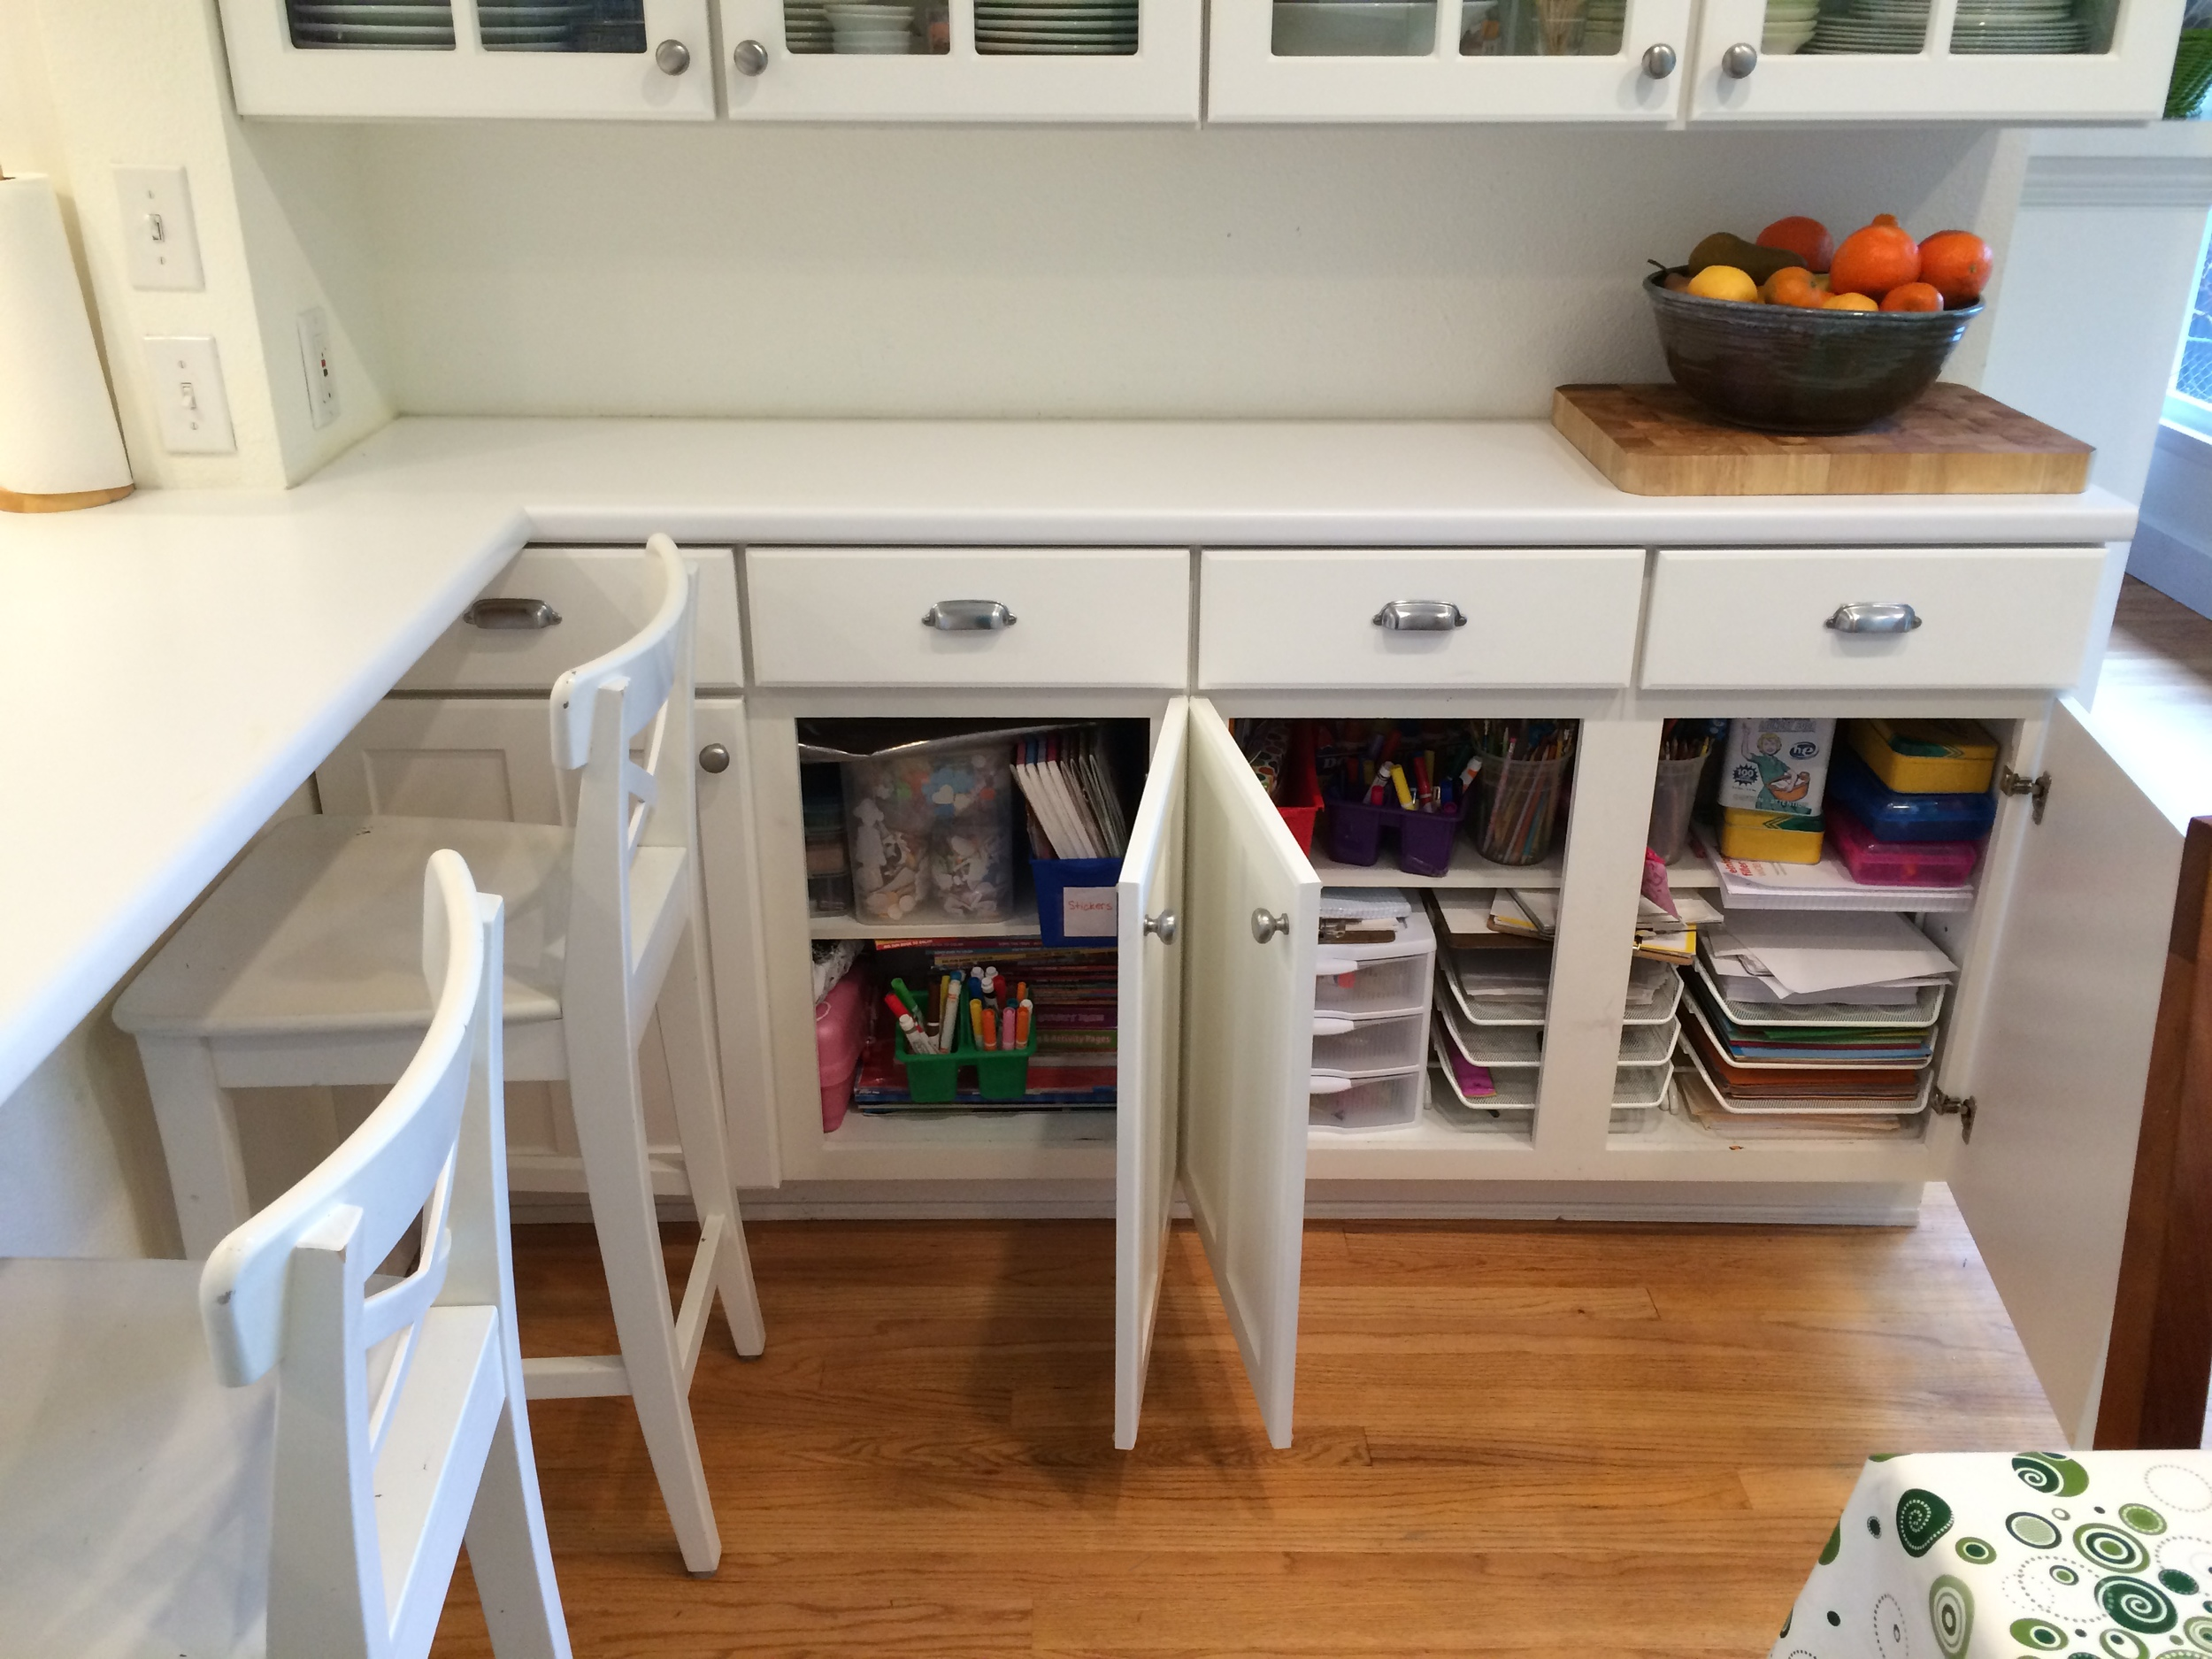 I decided to sacrifice some space recently and convert the lower cabinets to kids space.  This houses all our homework and craft supplies.  It was tricky to relocate some of the kitchen items I had here, but I'm glad I did because it gives my kids so much more opportunity to be creative when they have easy access to their supplies.  It also makes it easy for them to clean up when they are done.  My kids are old enough now that I feel comfortable with them having access to their art supplies for independent projects.  The only thing I don't keep down here is paint.